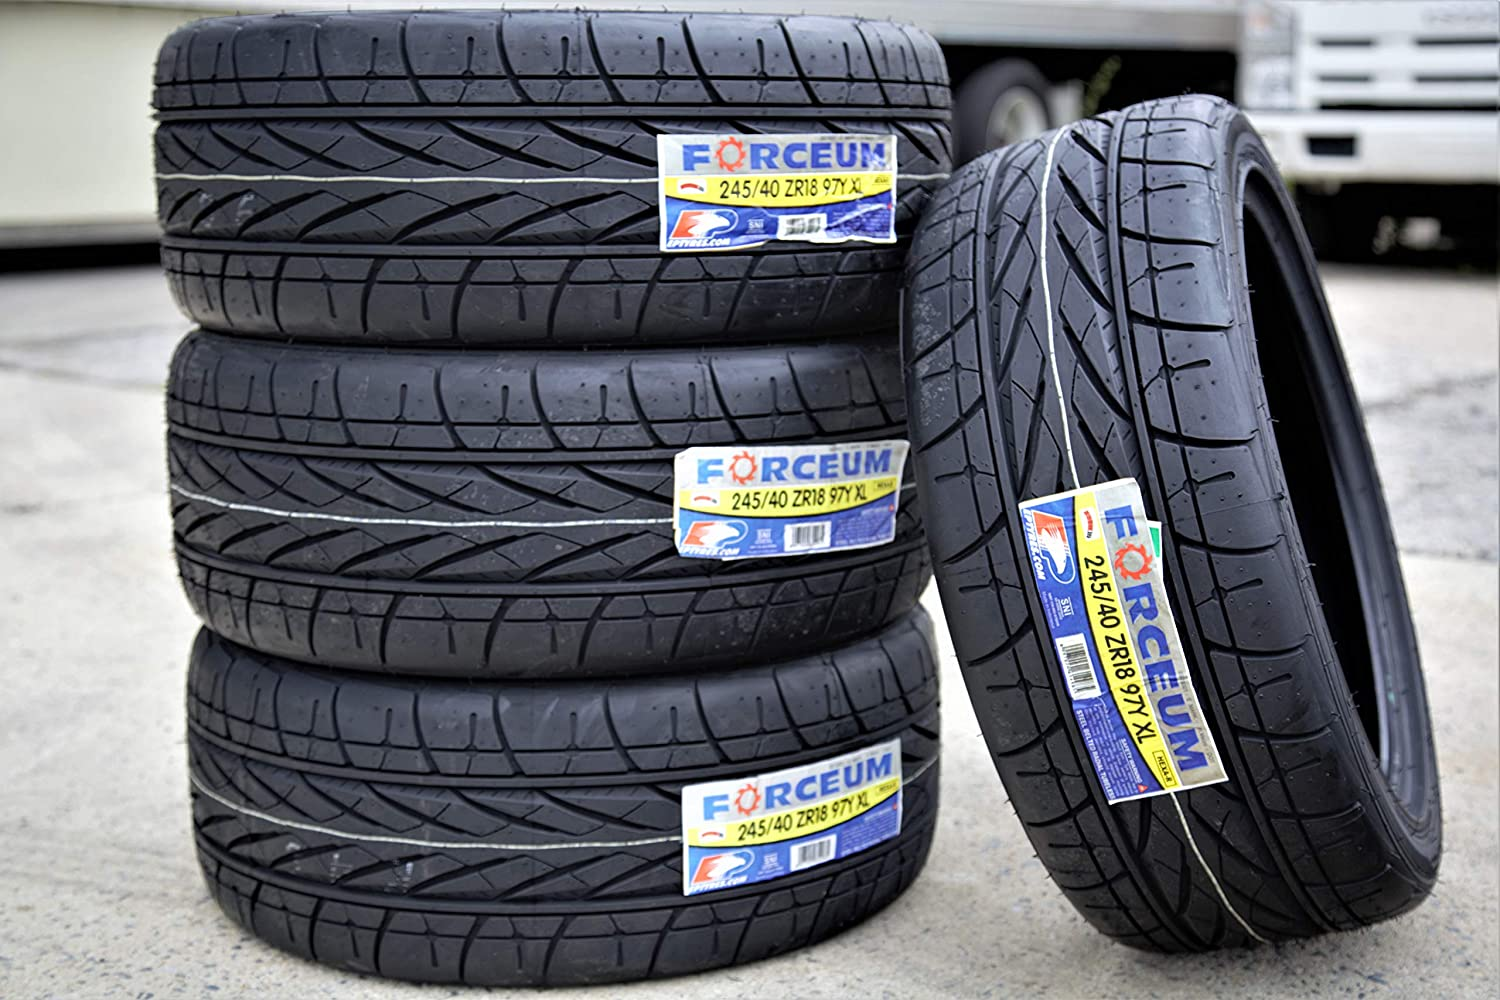 Hexa-R All-Season Radial Tires-245//40ZR18 97Y FOUR Forceum Set of 4